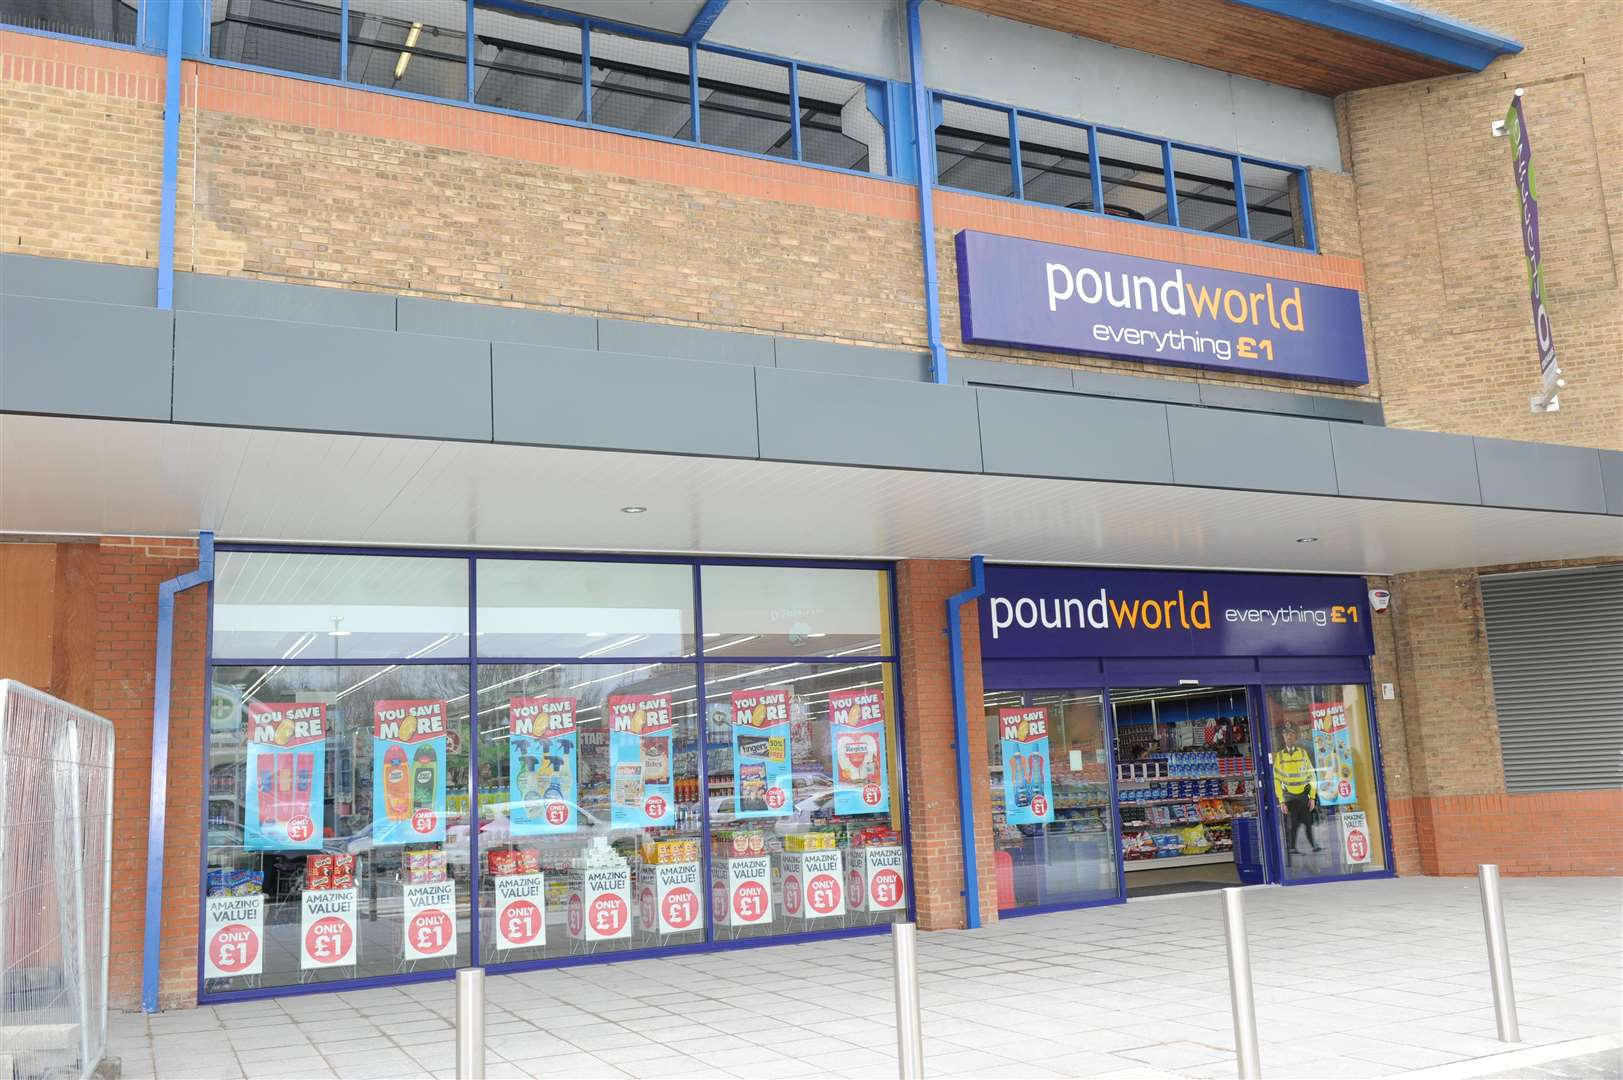 Poundworld at Orchards Shopping Centre in Dartford